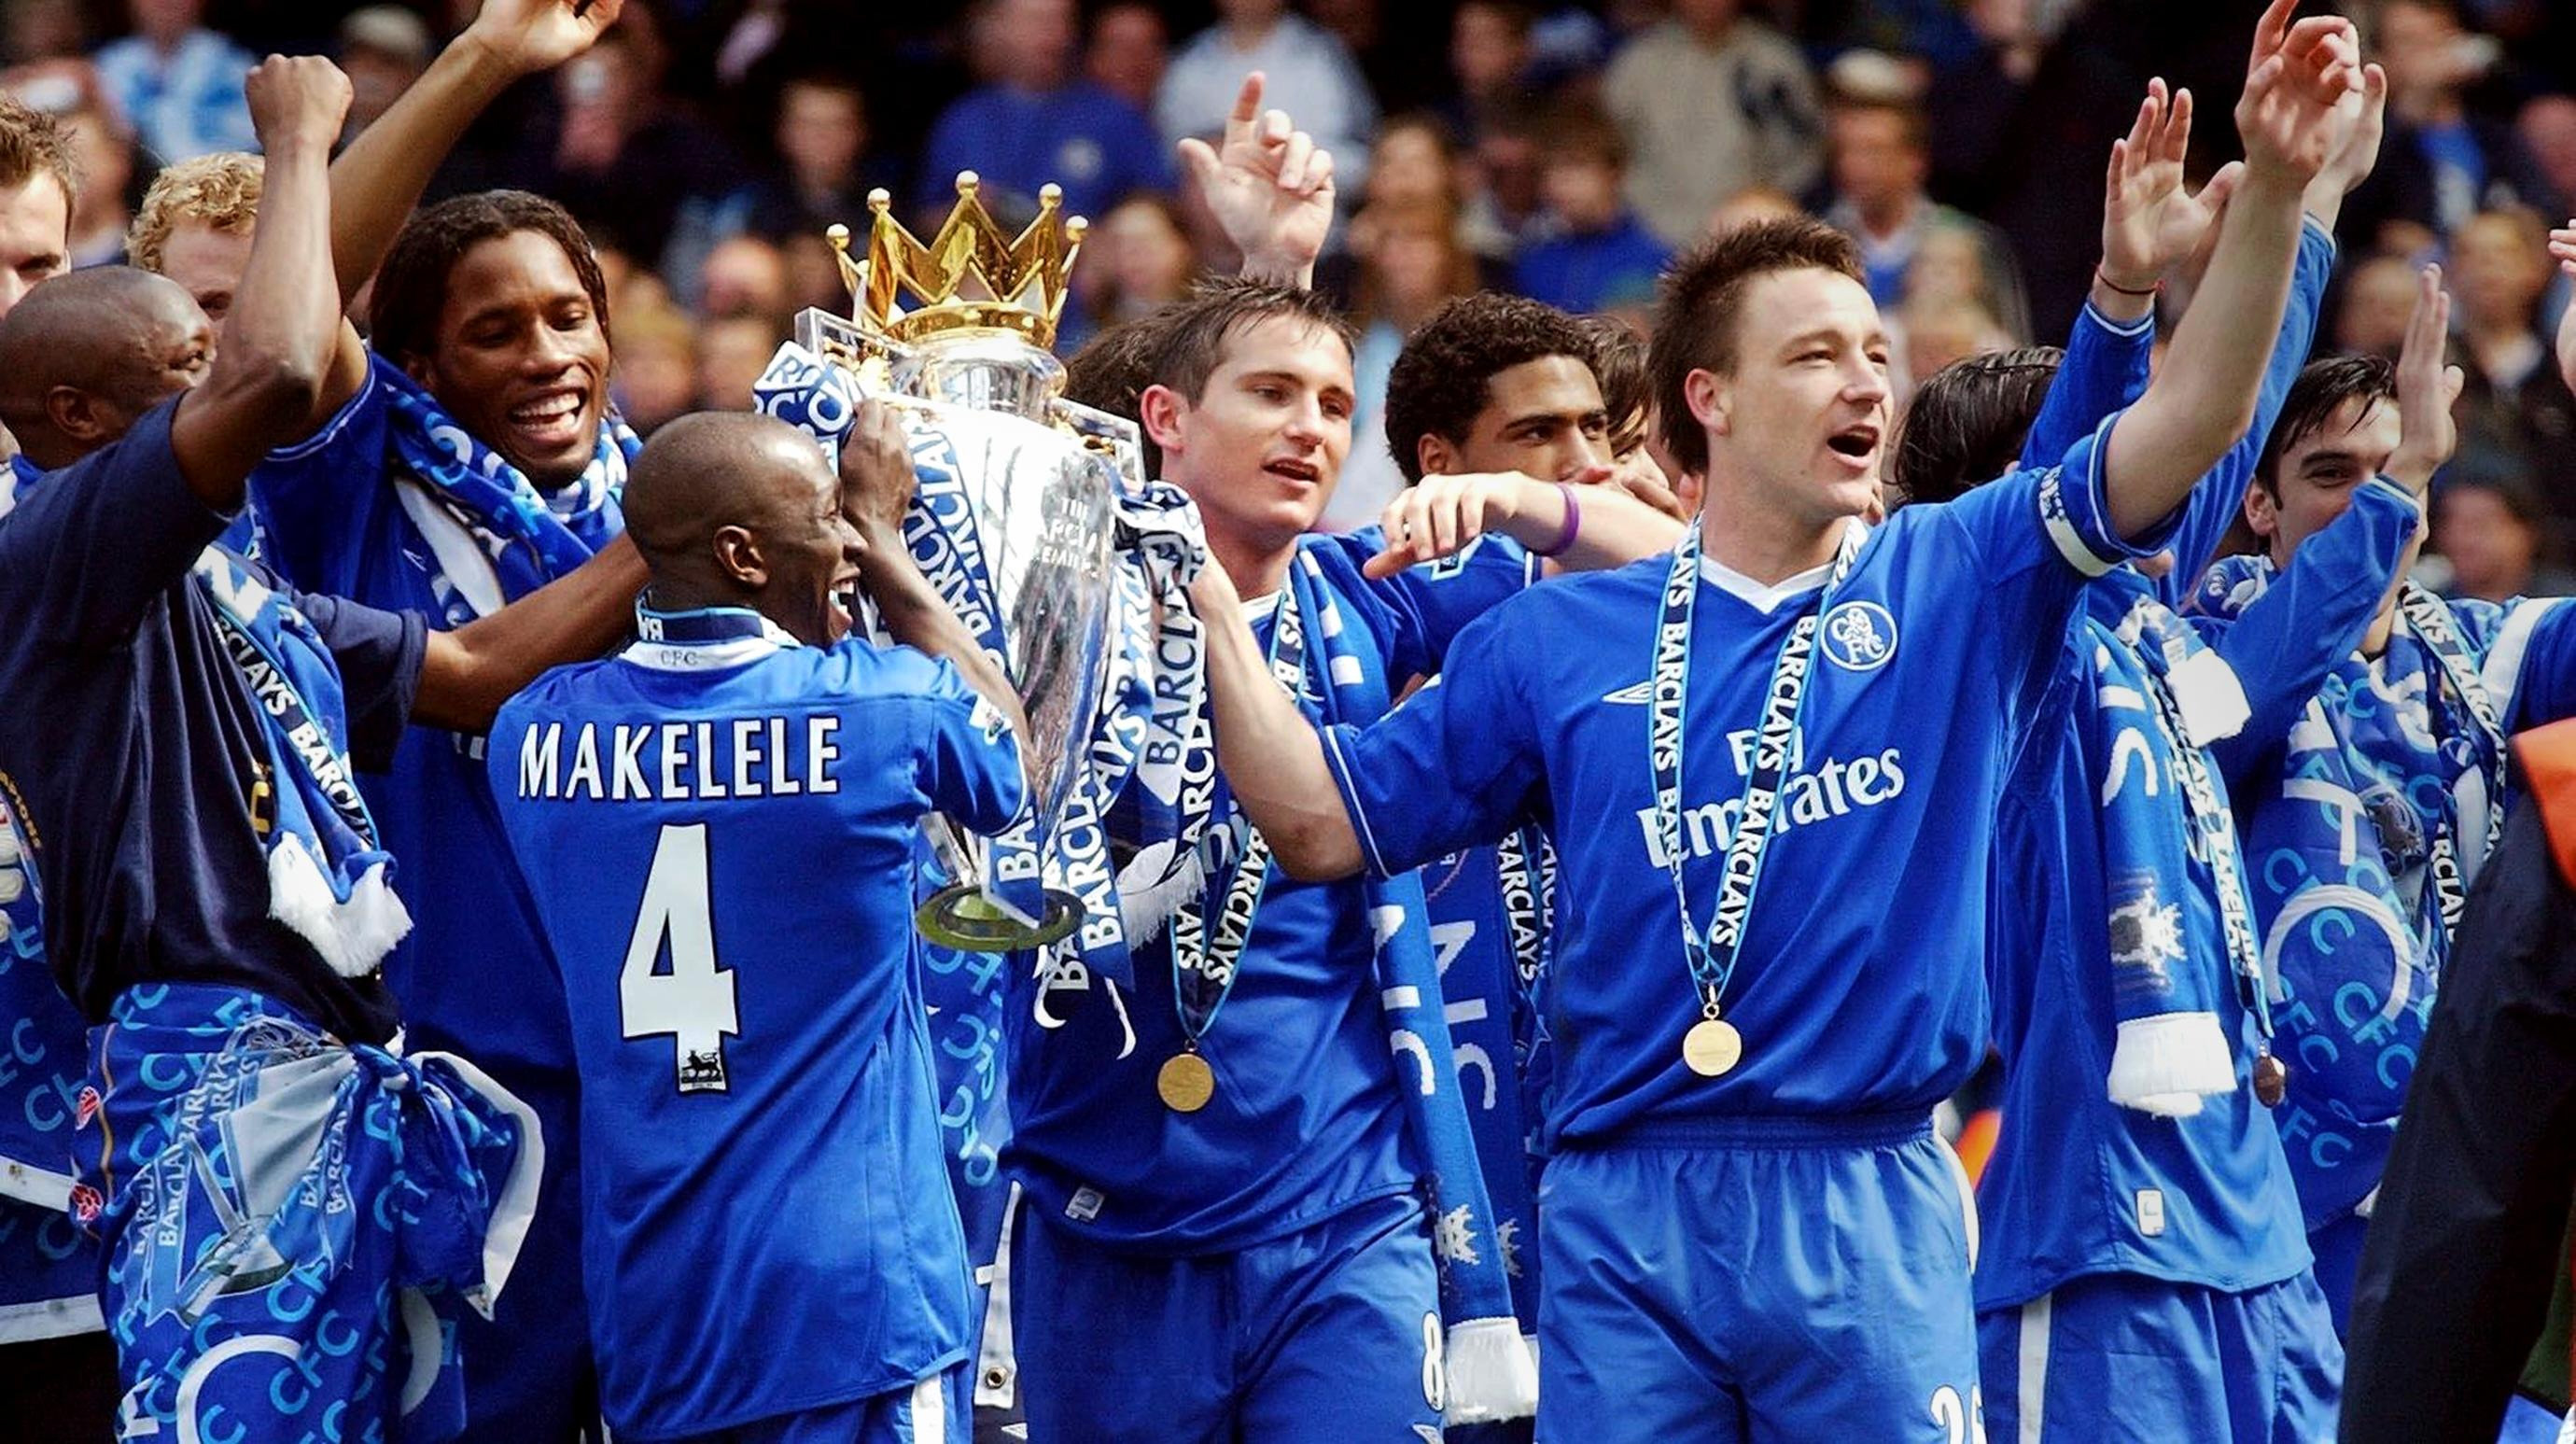 Chelsea's 2004/05 team celebrate winning the Premier League title